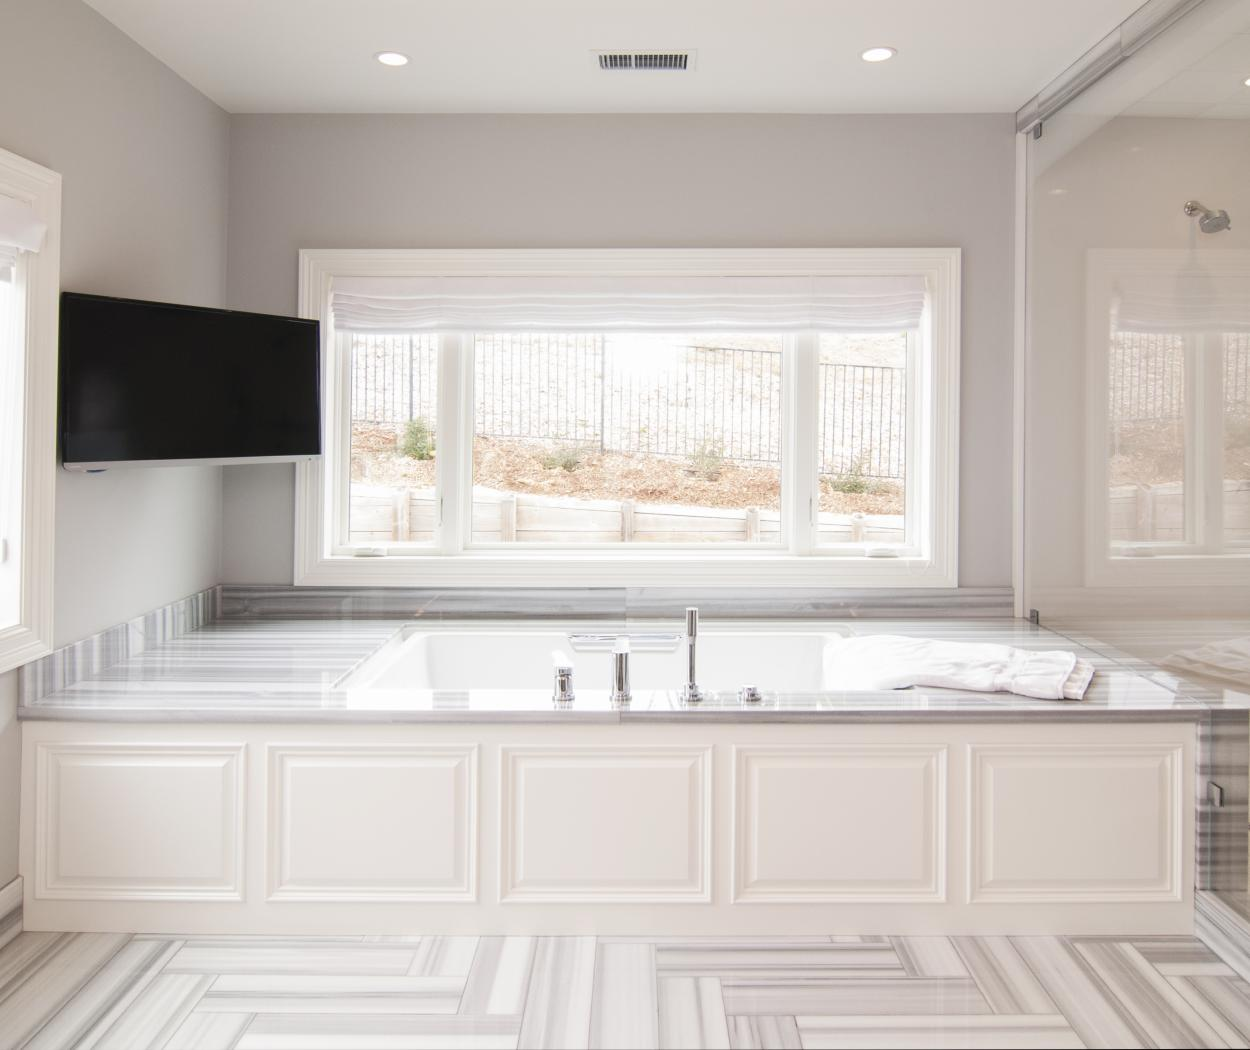 White Traditional Master Bathroom Built-Ins with a Beautiful White and Grey Marble Counter Top